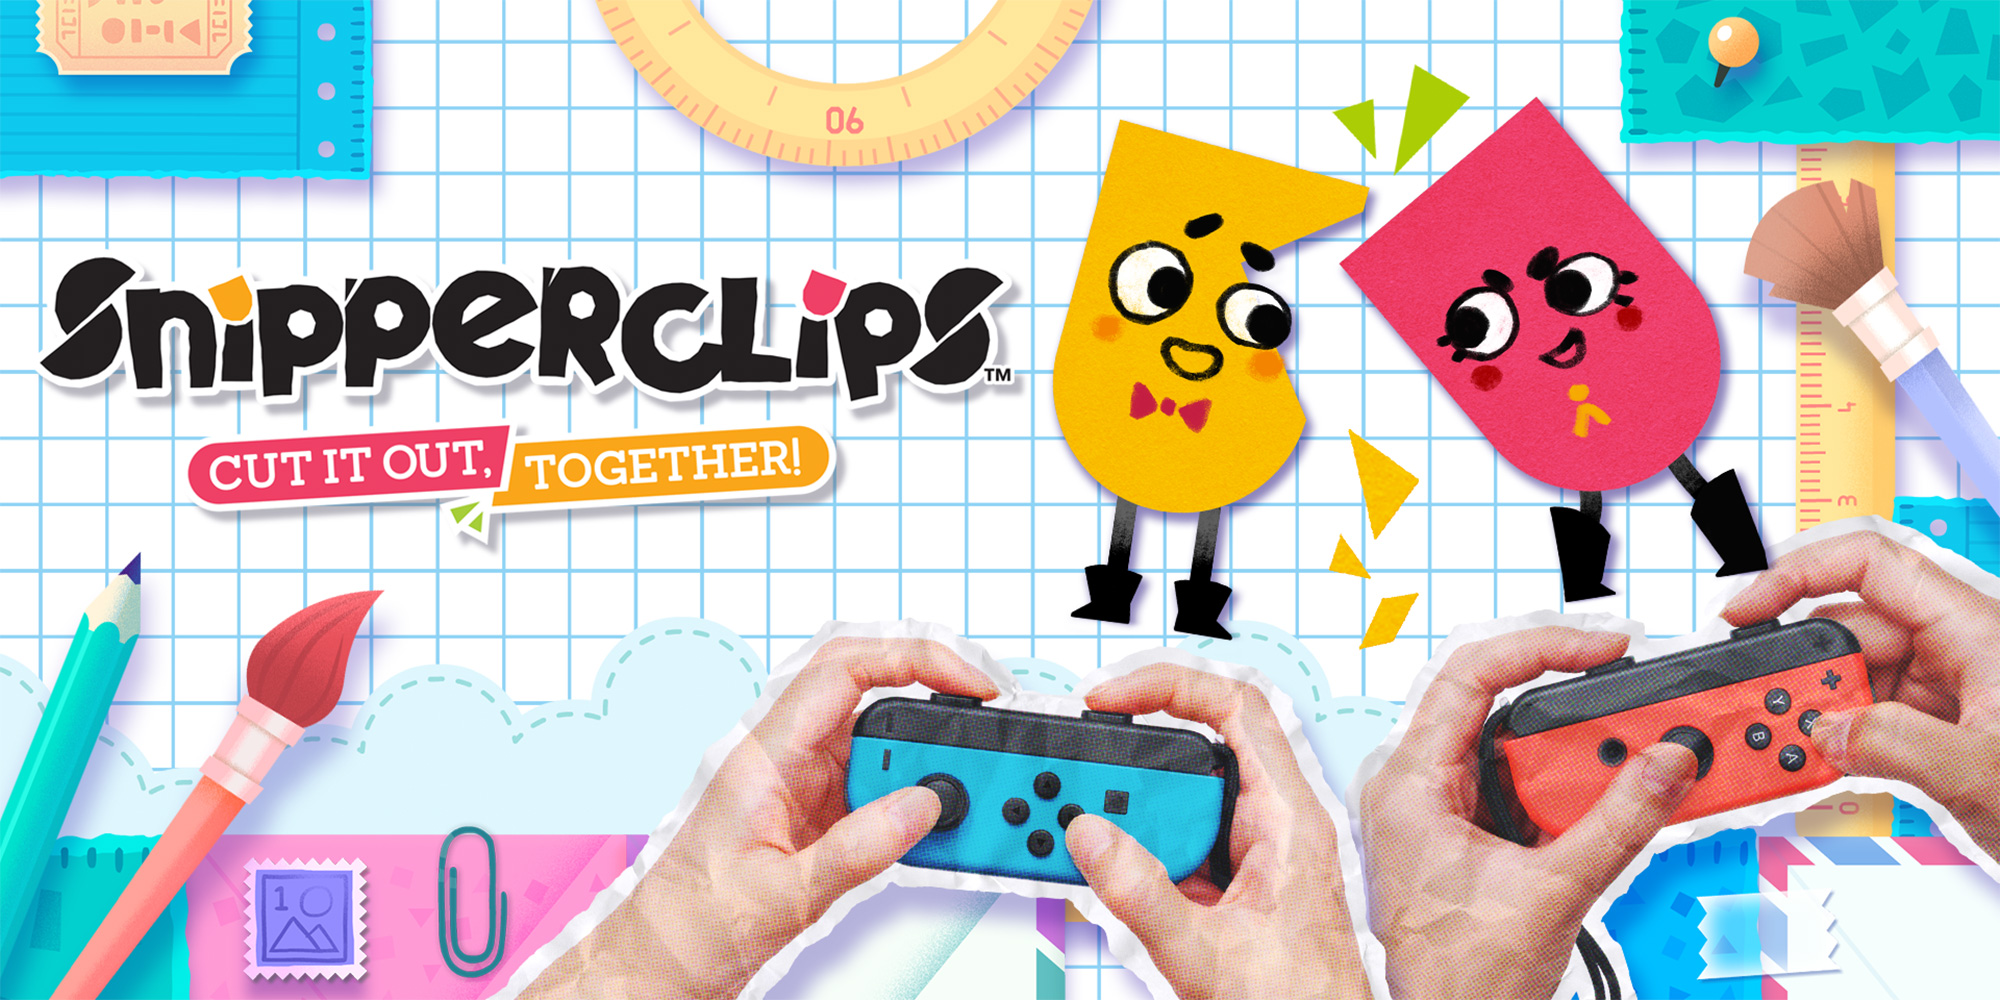 Snipperclips – Cut it out, together!